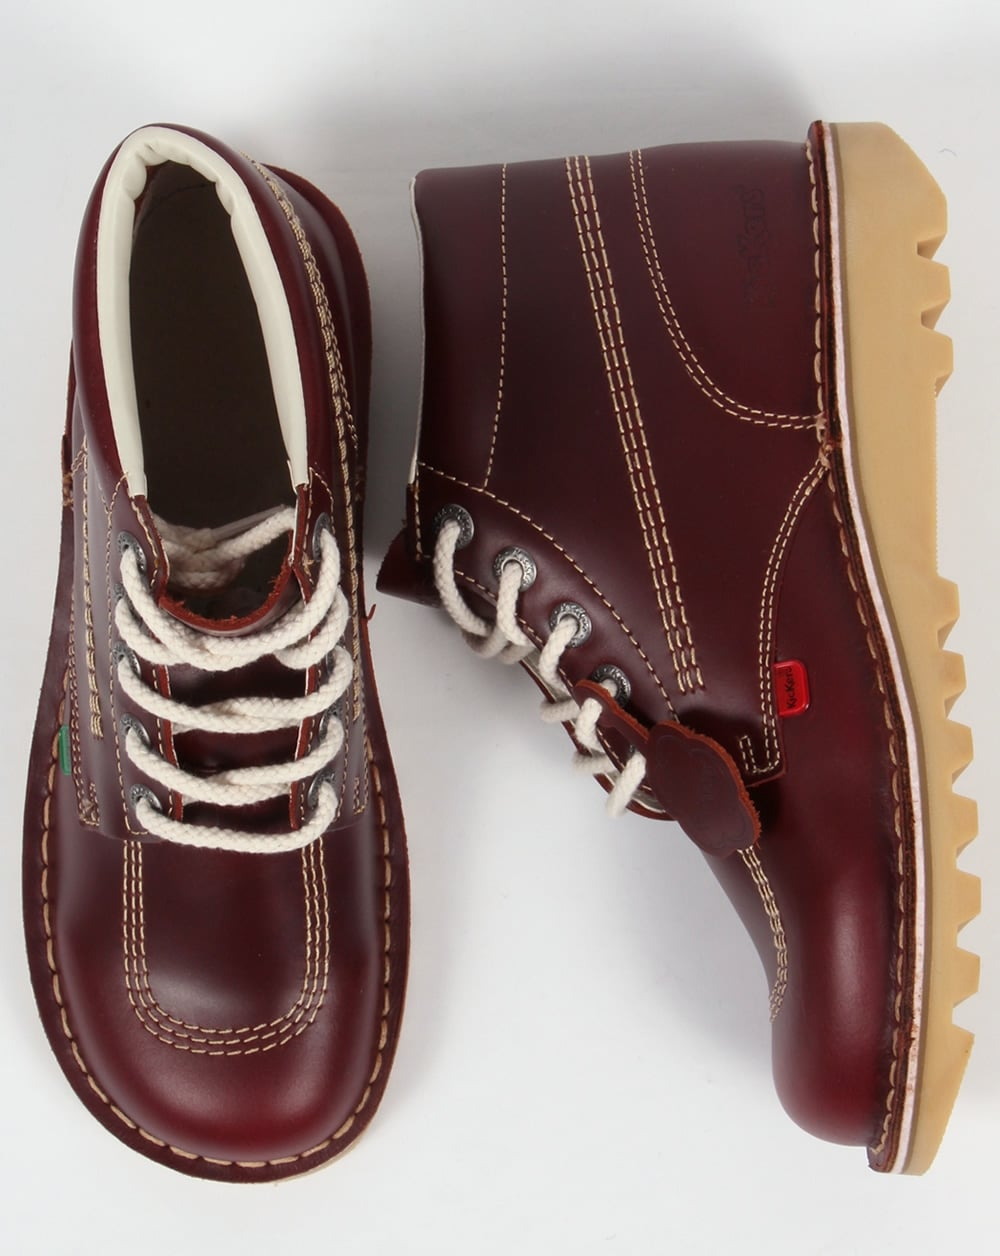 Kickers Kick Hi Boots In Leather Cherry Brown - 0